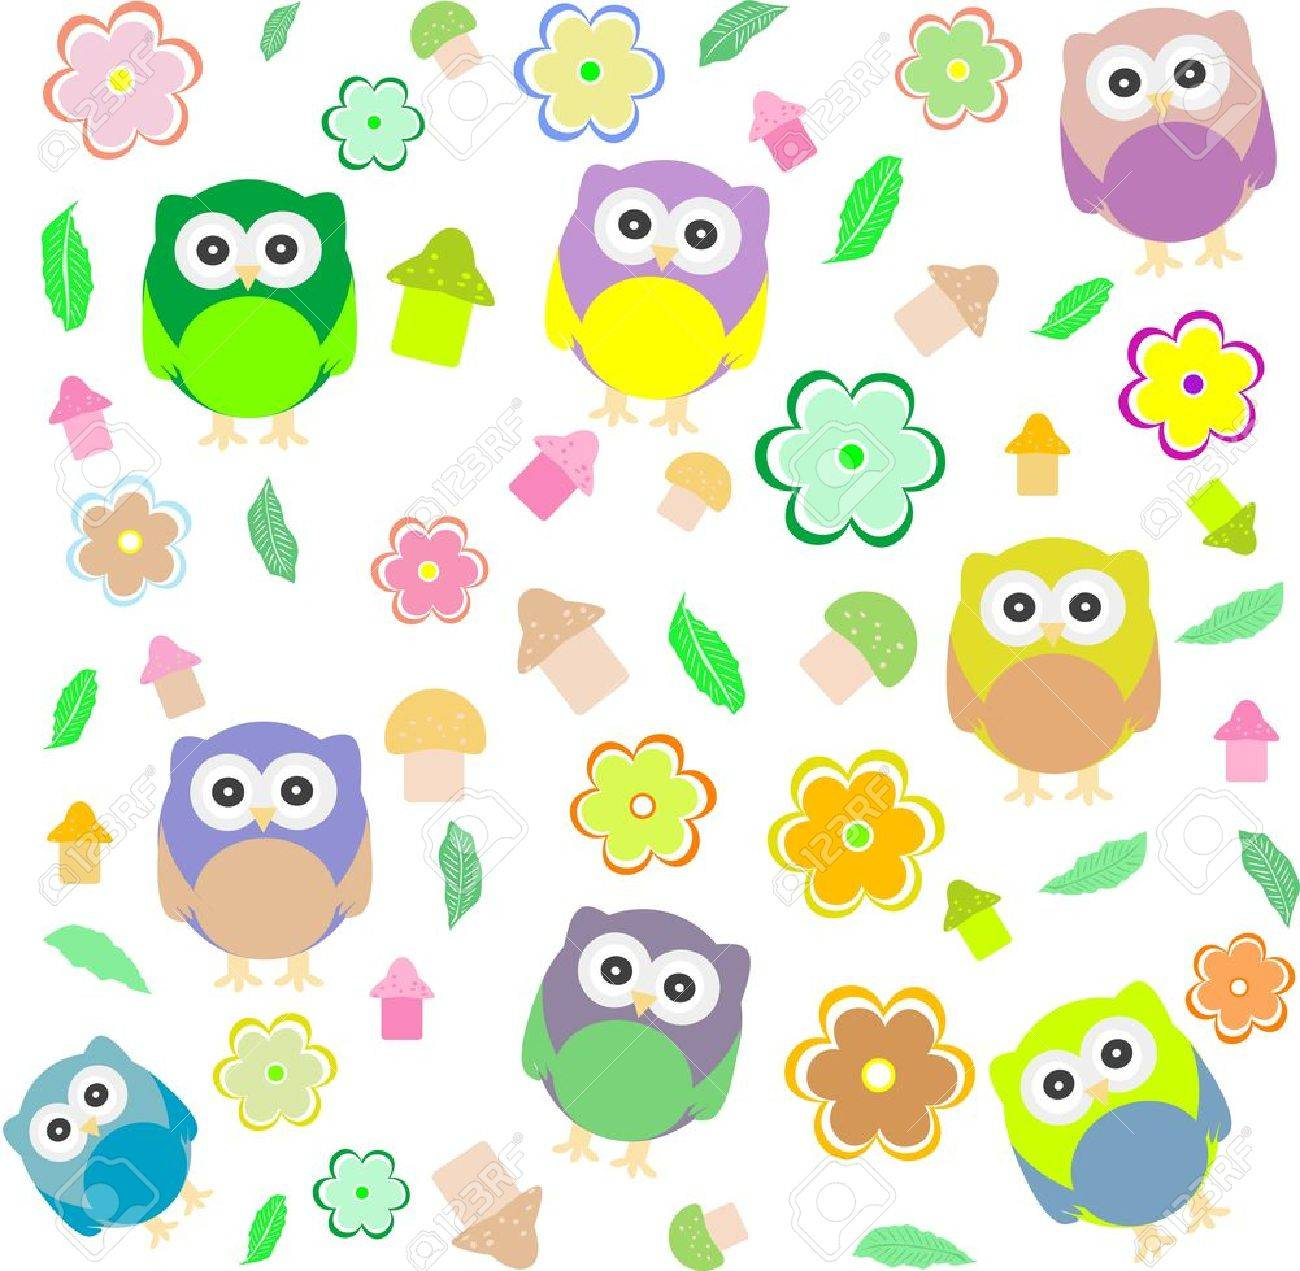 seamless background with spring elements - owls, mushrooms and flowers Stock Vector - 12221330